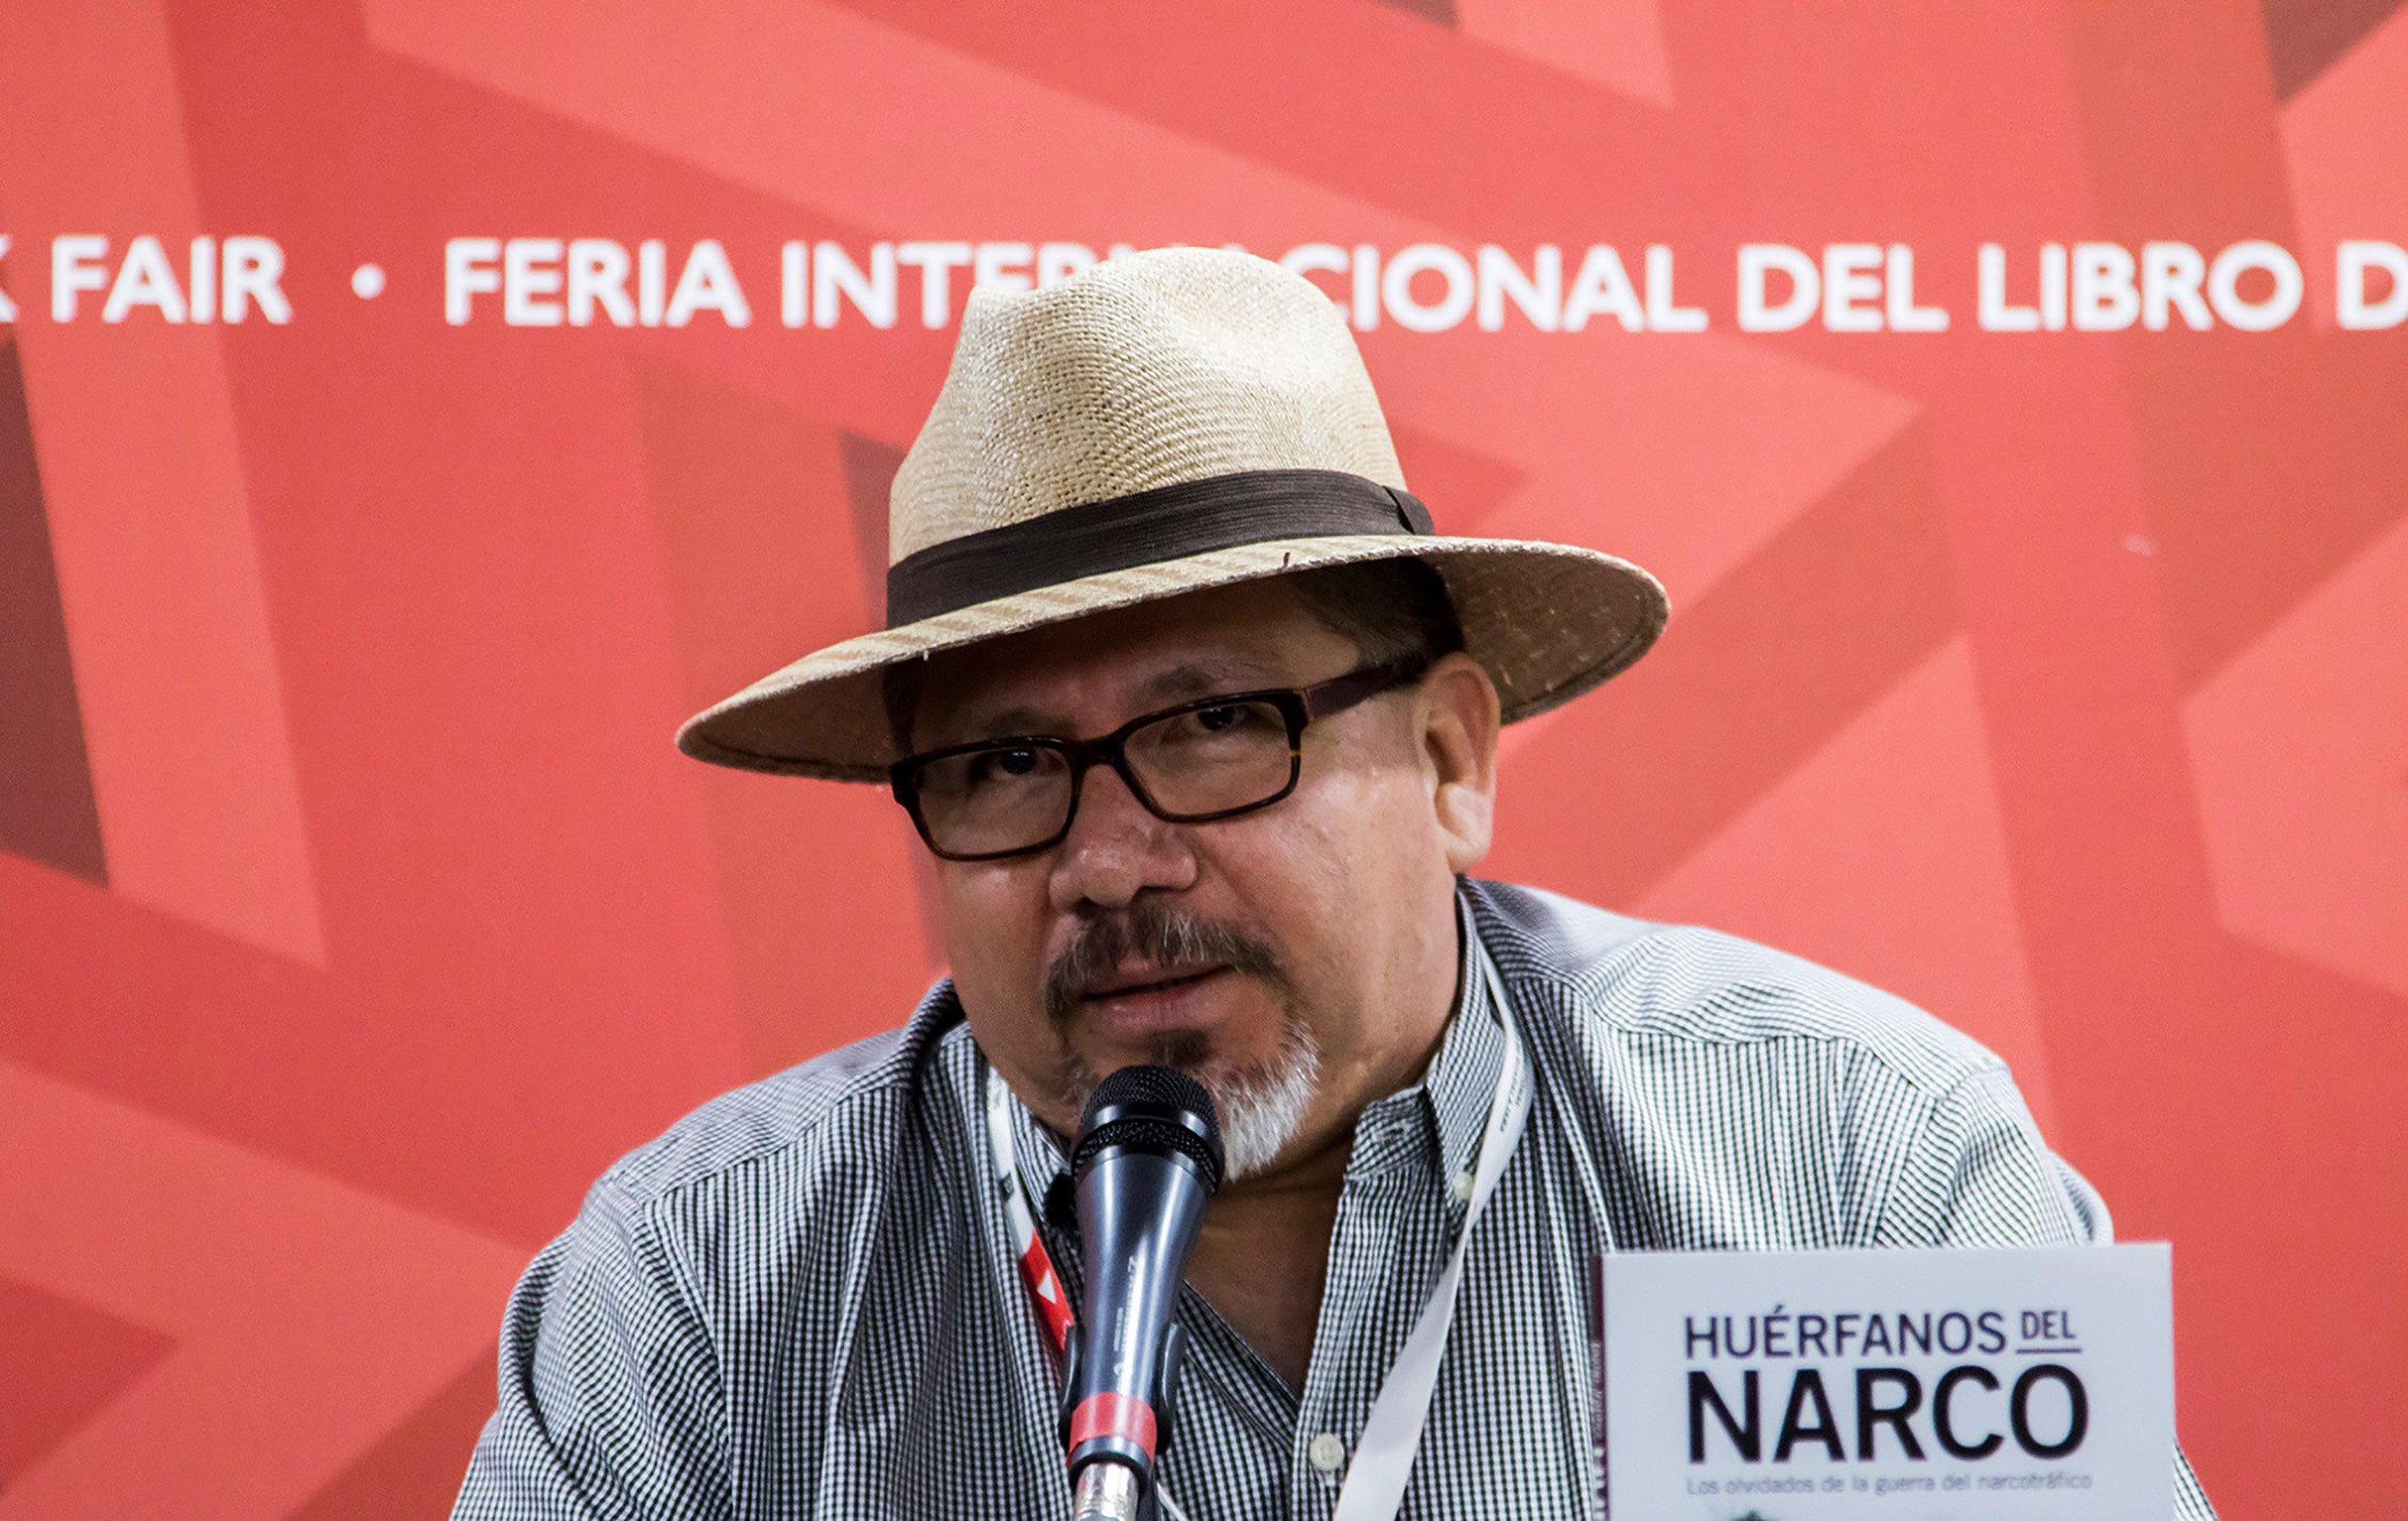 Mexican journalist Javier Valdez speaking during the presentation of his book  Huerfanos del Narco  in the framework of the International Book Fair in Guadalajara, Mexico on Nov. 27, 2016.